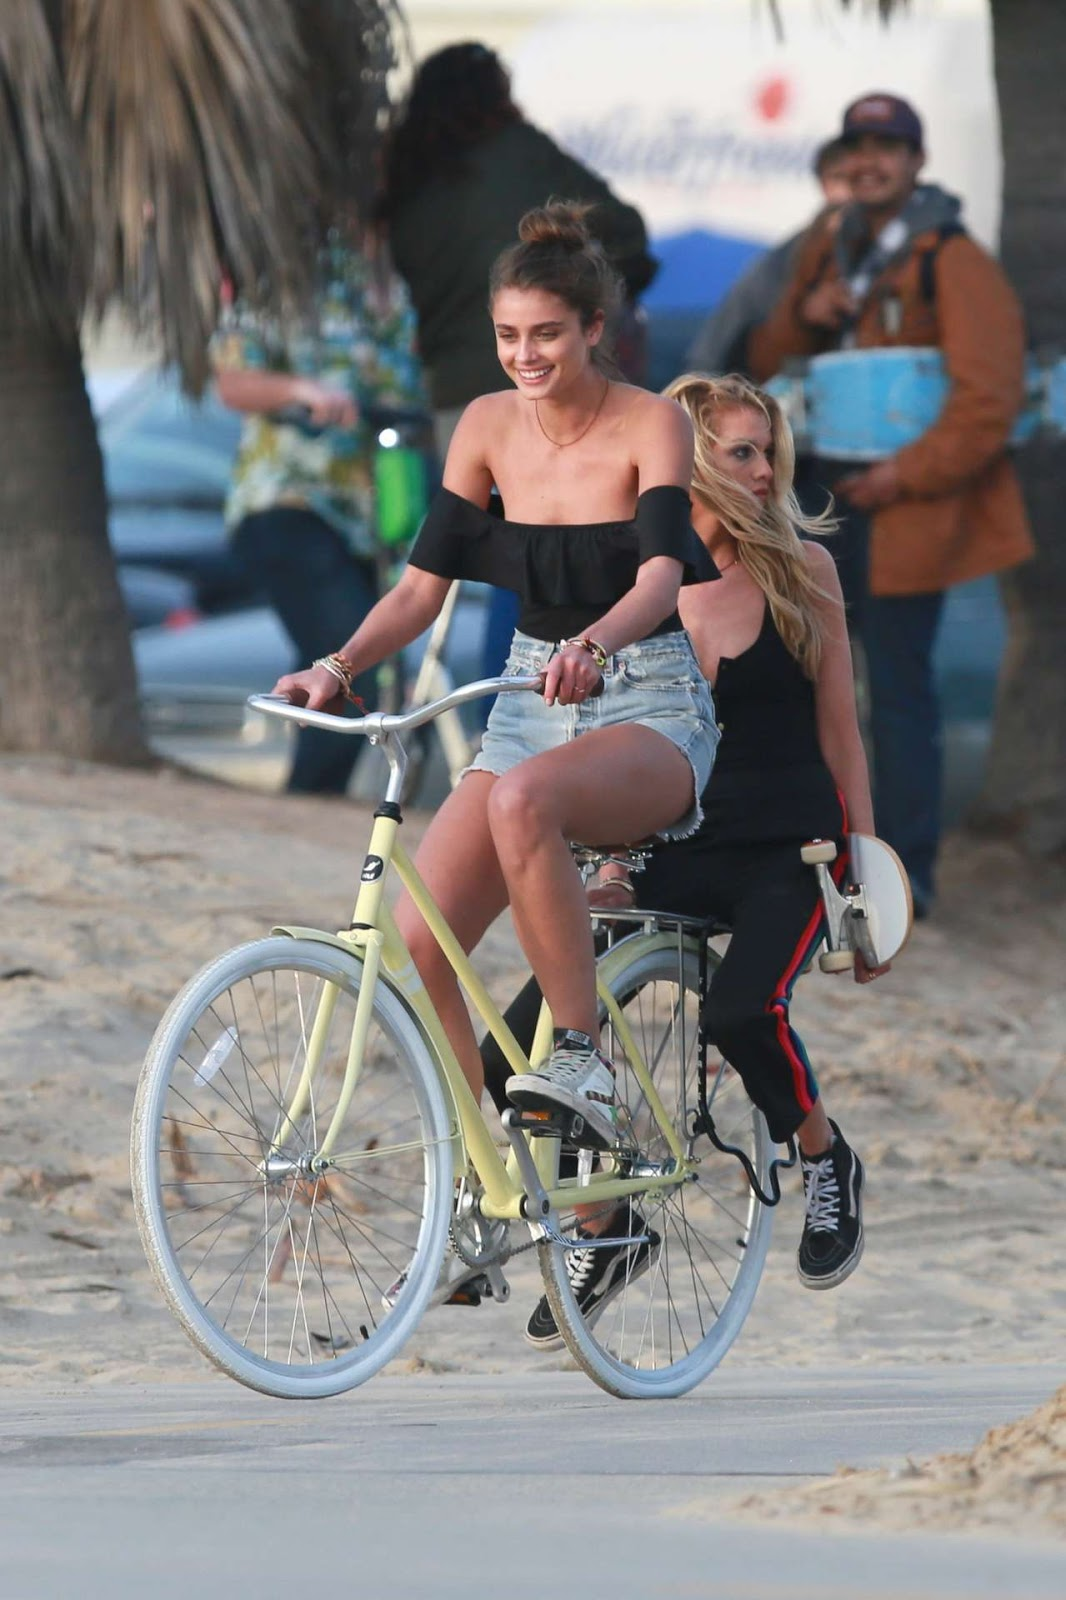 Taylor Hill and Stella Maxwell – Victoria's Secret Photoshoot in Venice Beach